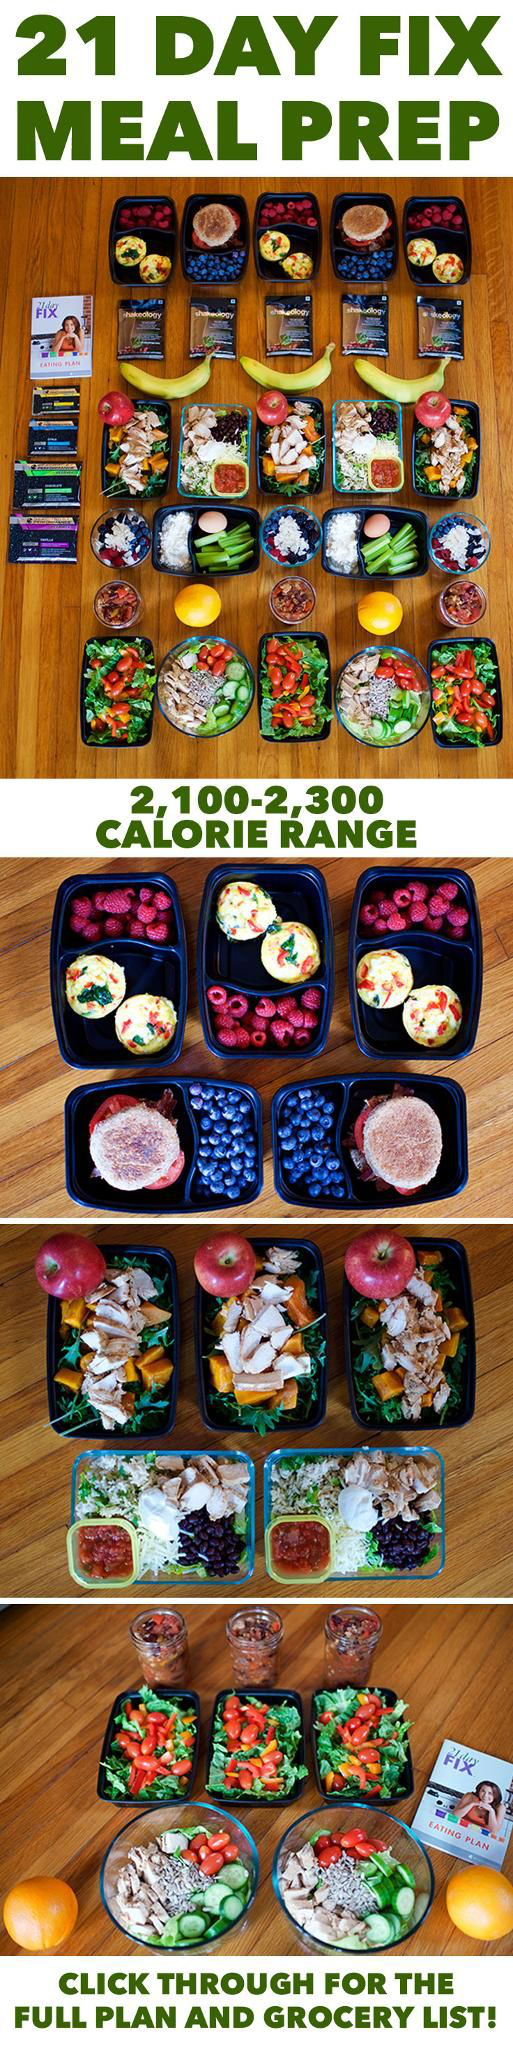 Meal Prep for the 21 Day Fix 2,100-2,300 Calorie Level ...